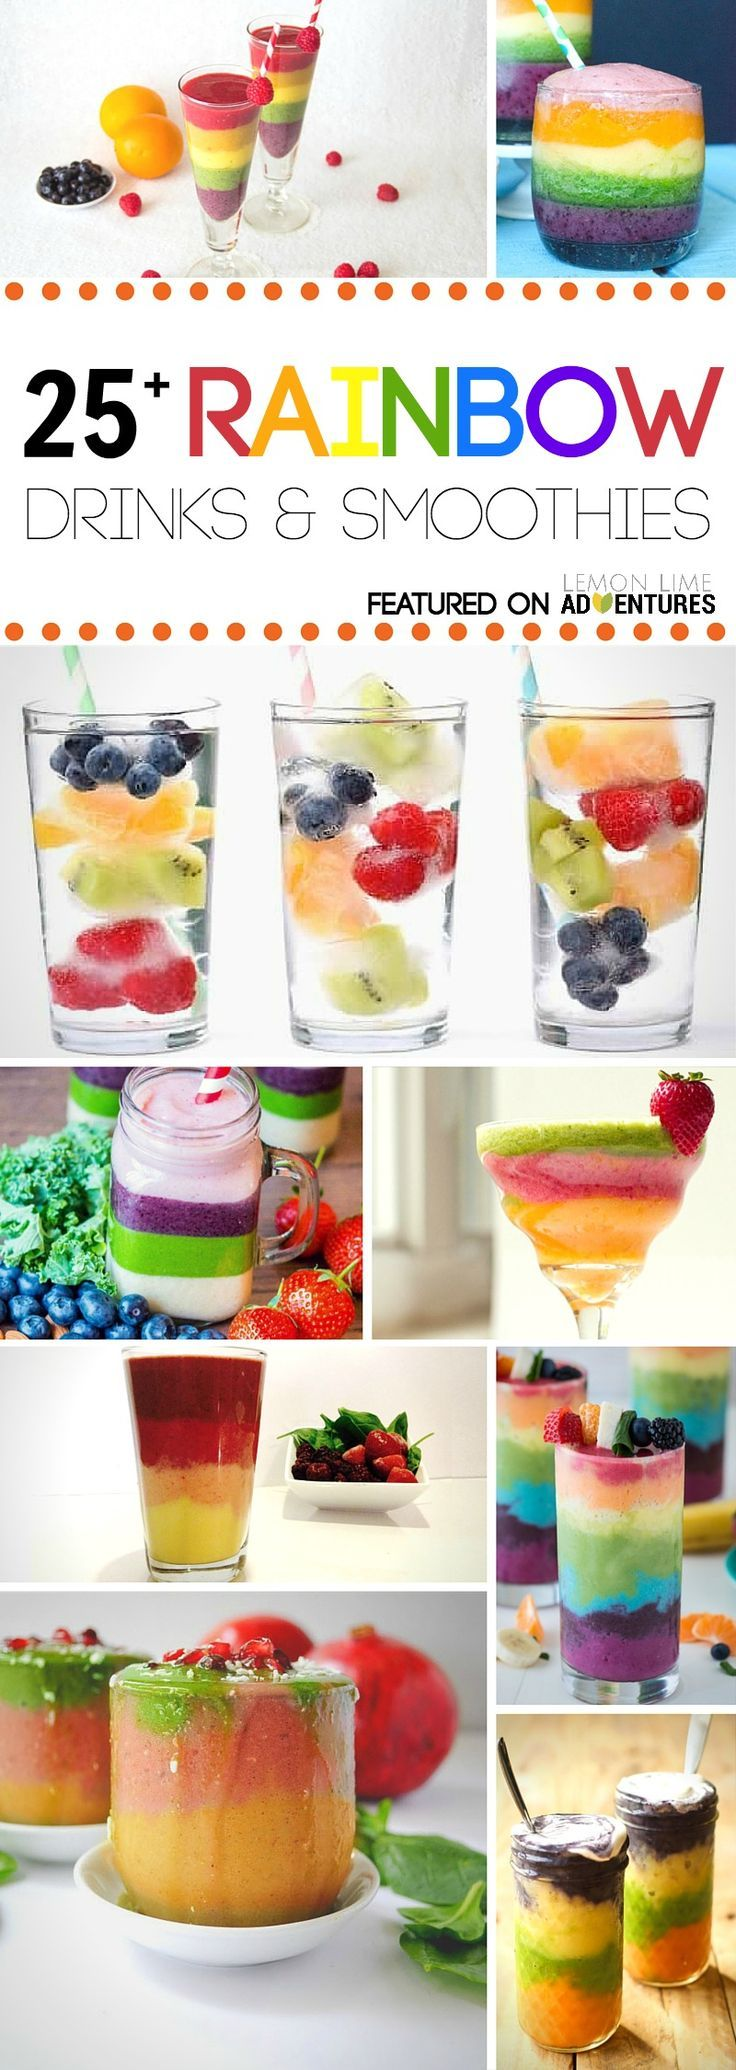 25 Healthy Rainbow Drink & Smoothie Recipes | Perfect for any rainbow birthday party theme